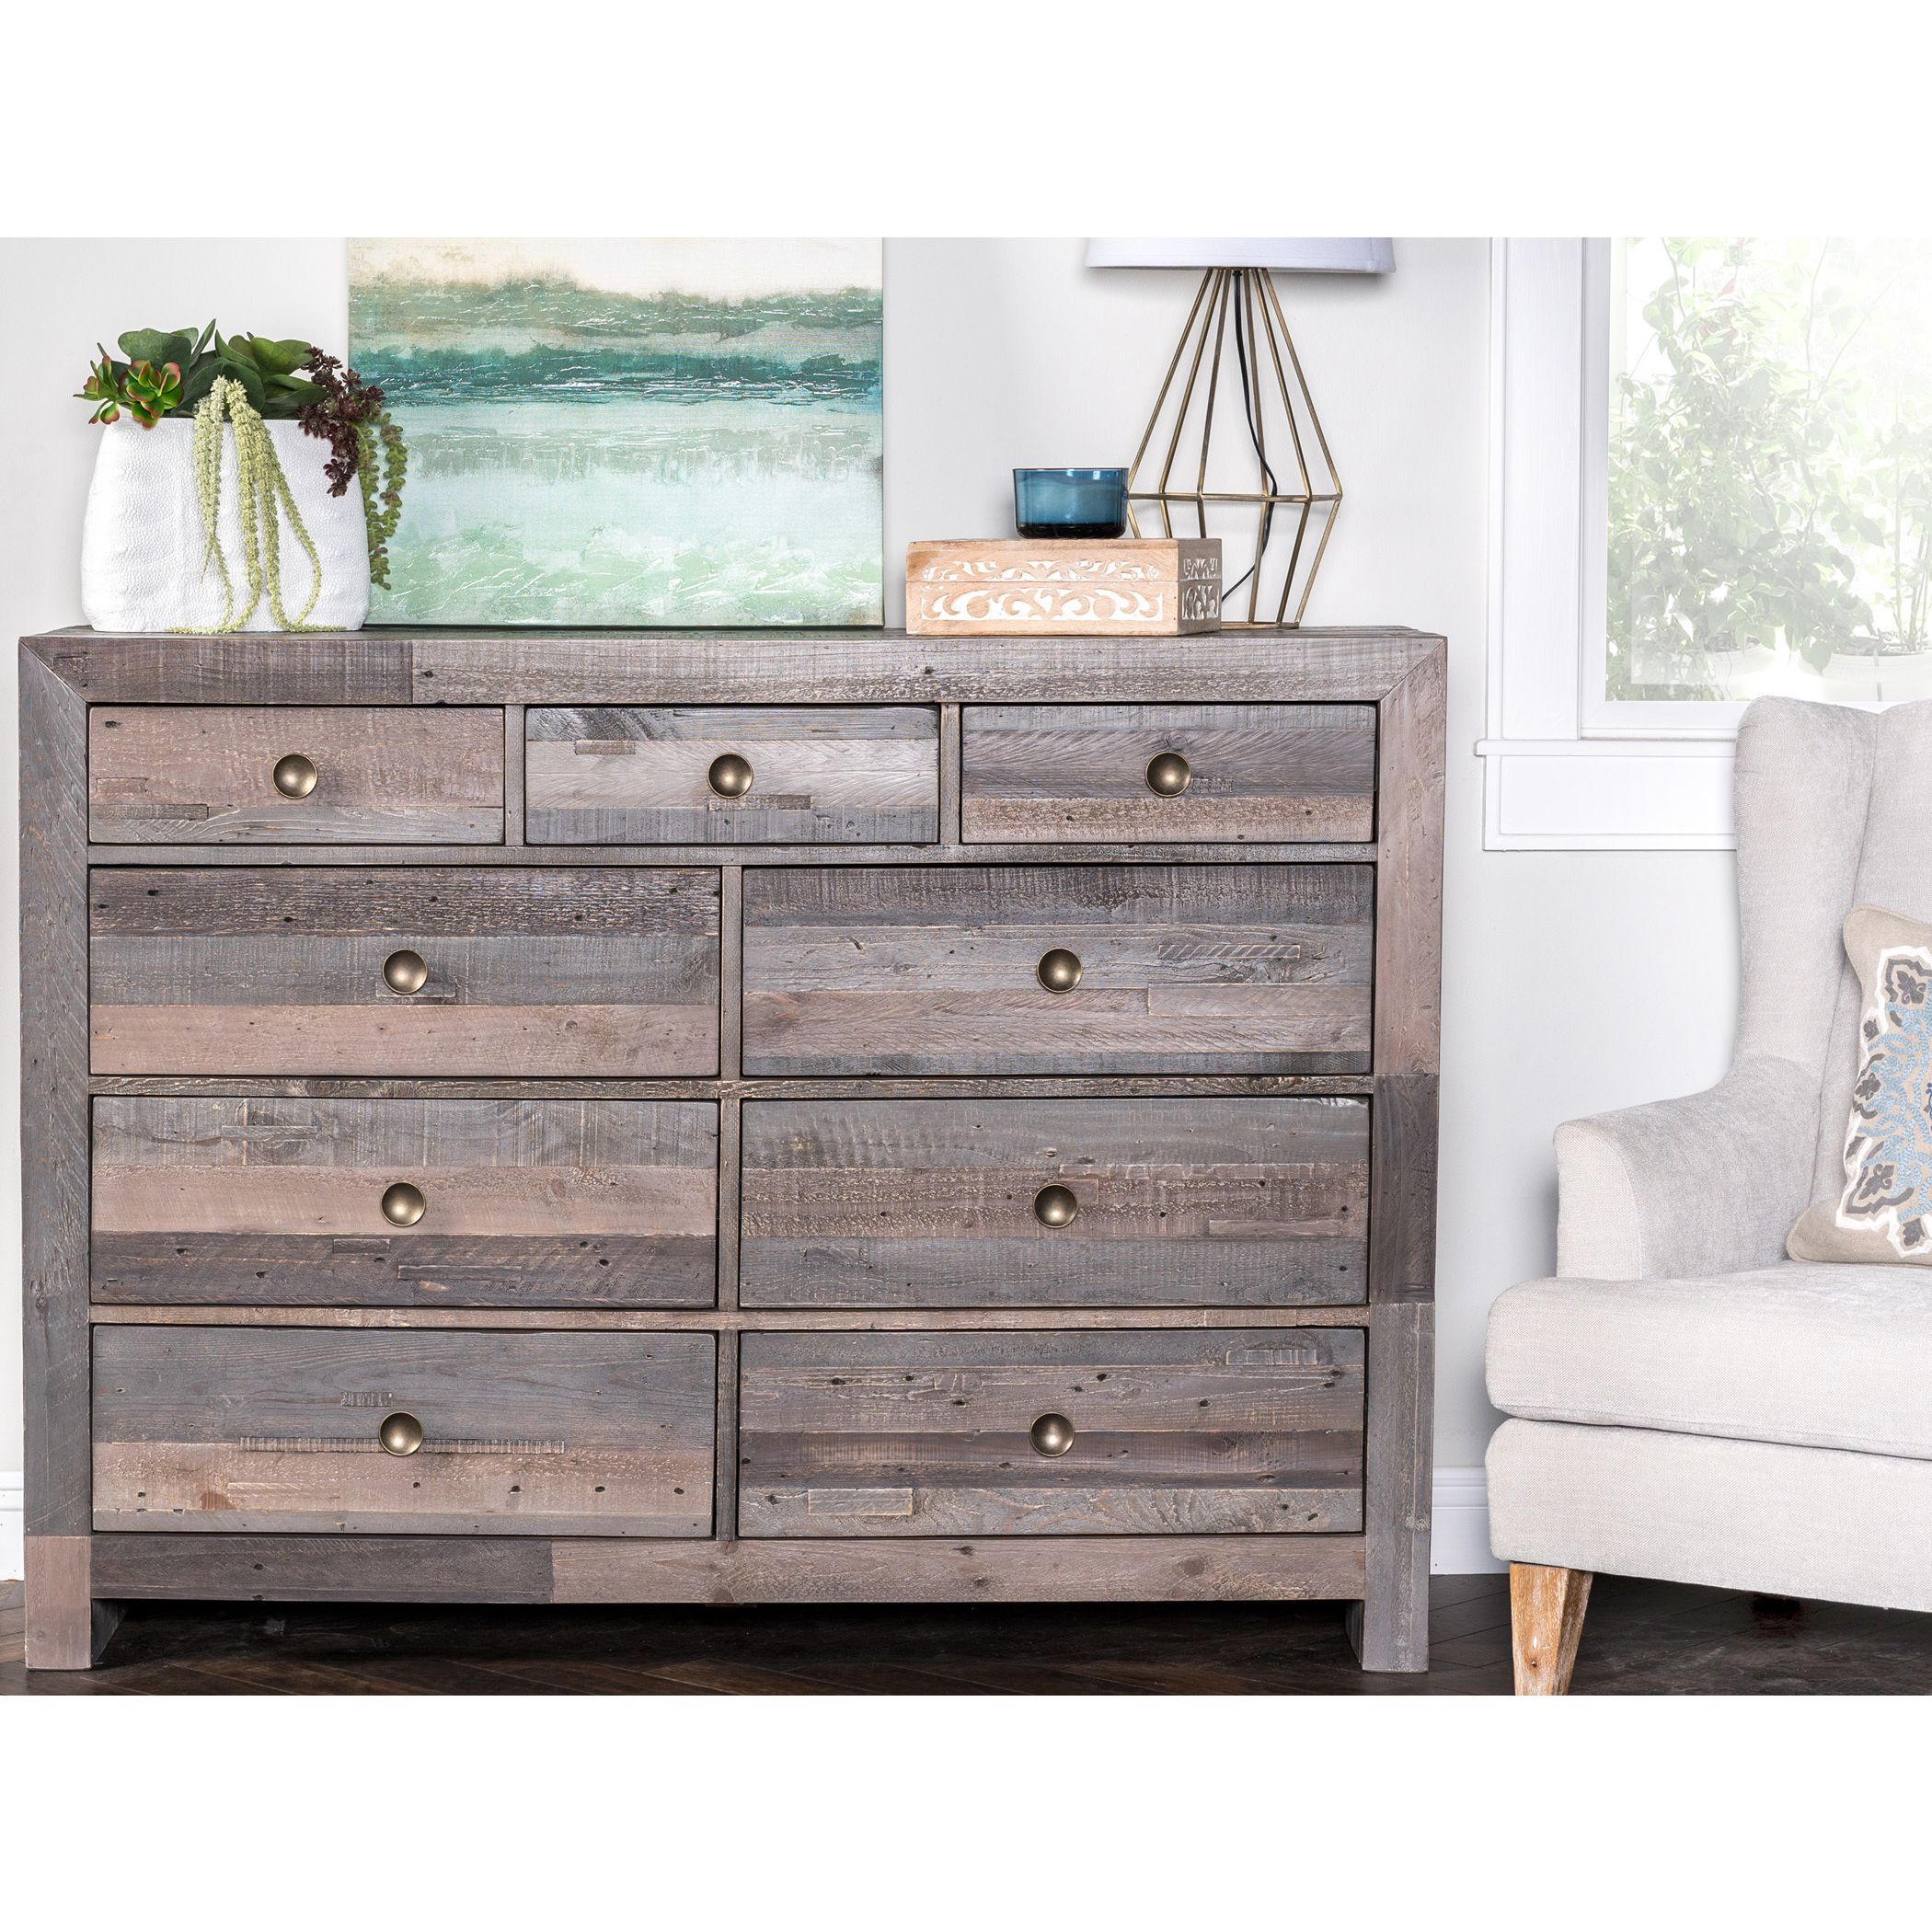 Kosas home oscar charcoal distressed wood handcrafted dresser